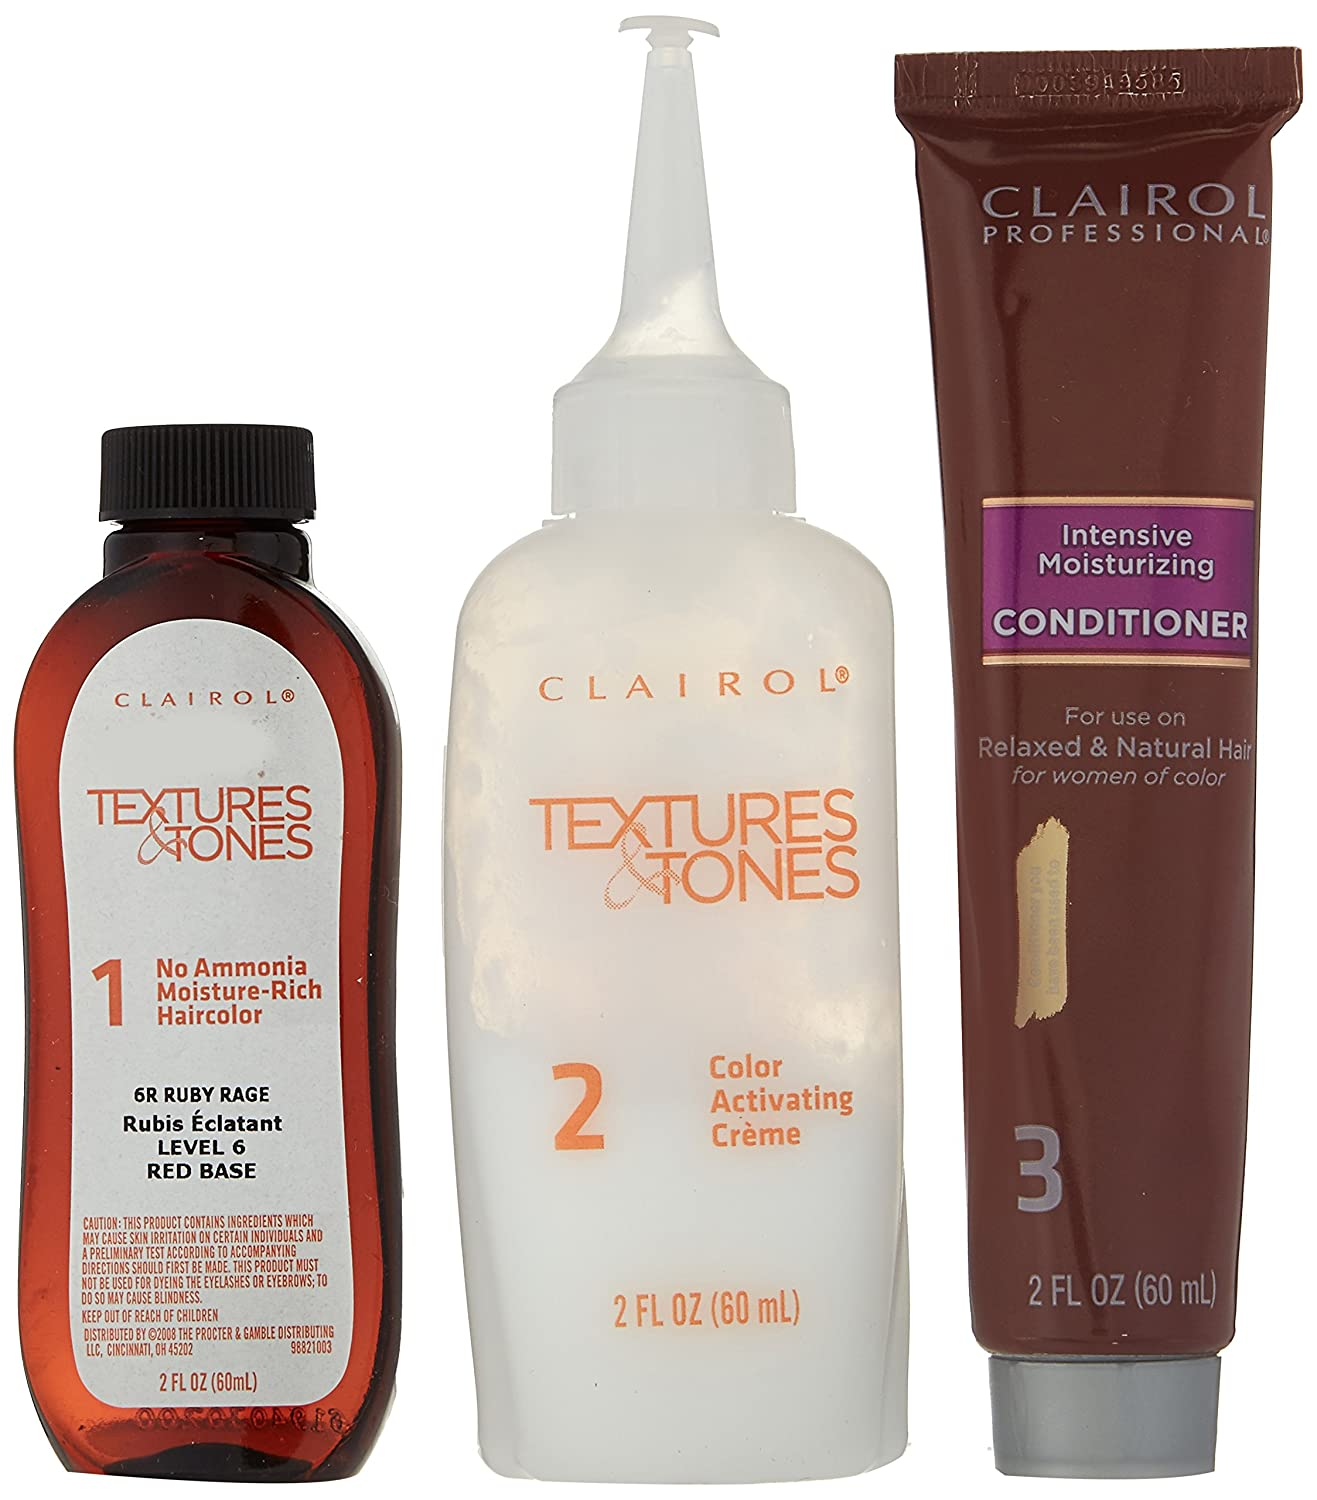 6R Ruby Rage | Clairol Textures & Tones - SH Salons